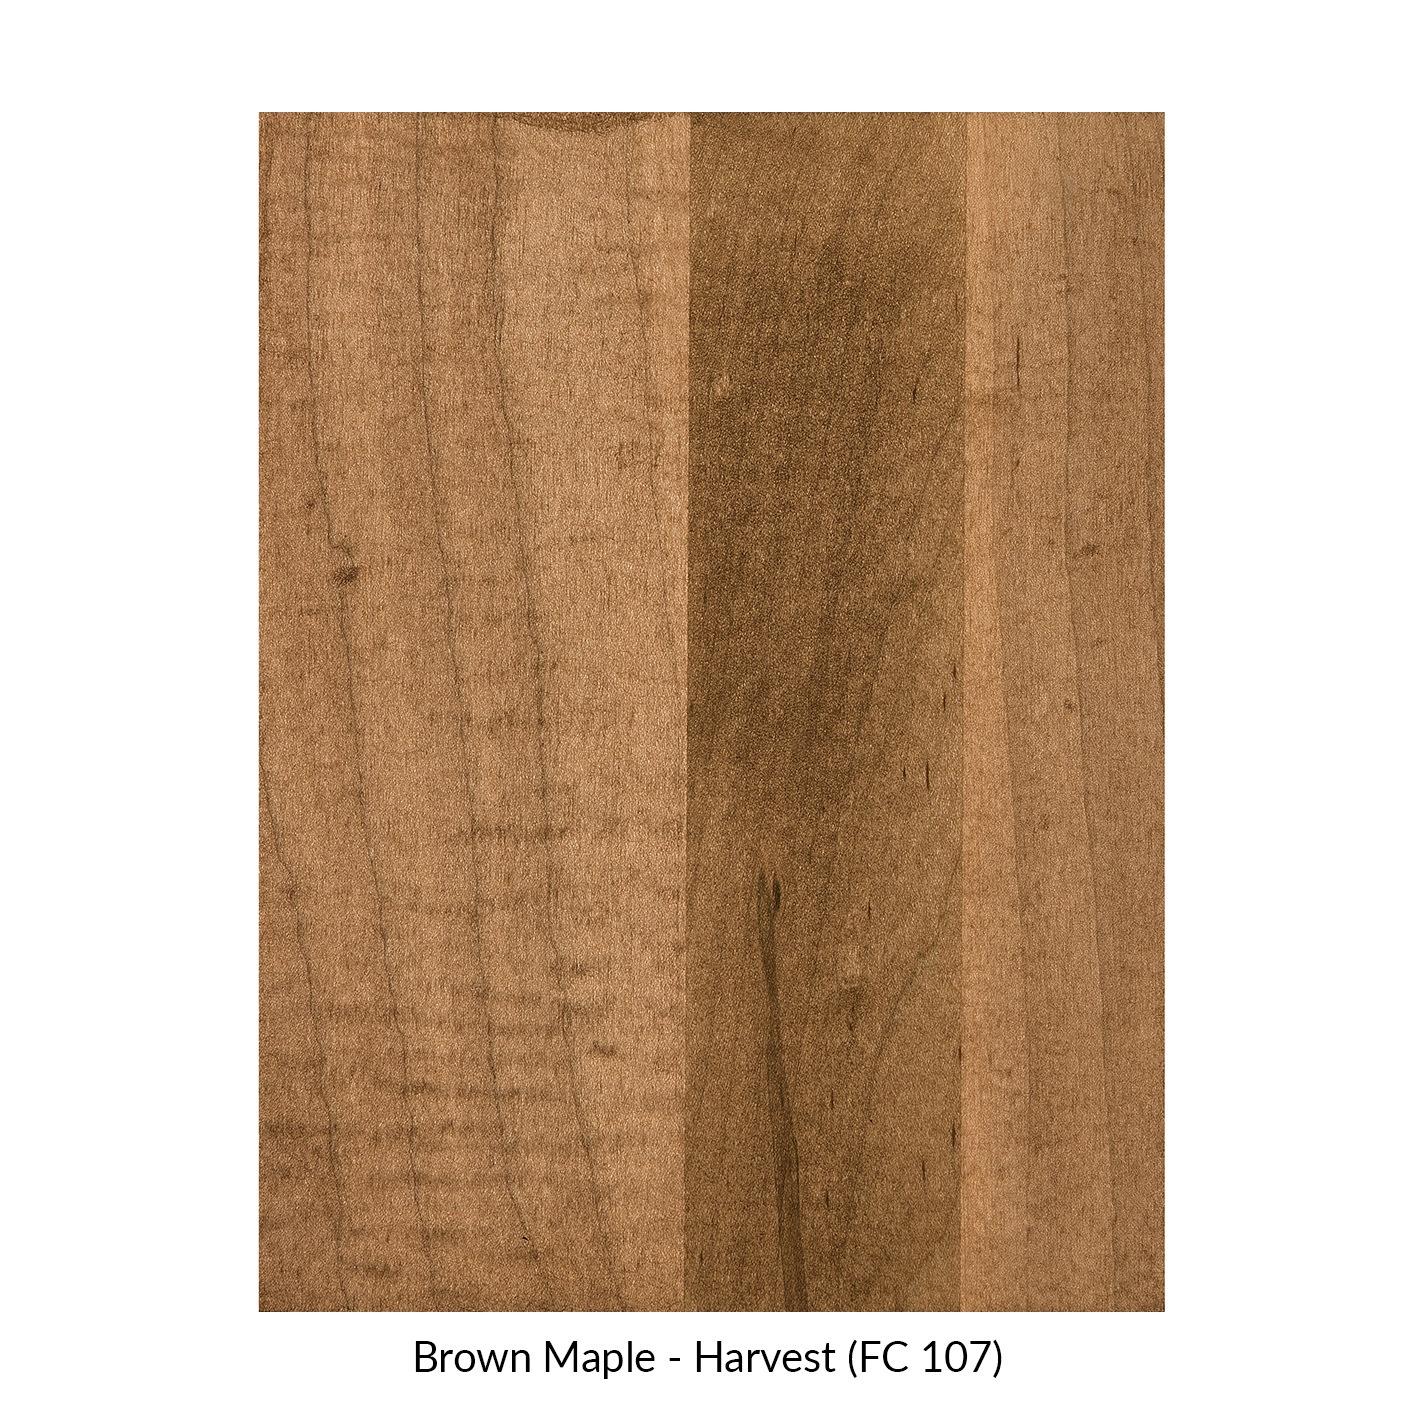 spectrum-brown-maple-harvest-fc-107.jpg